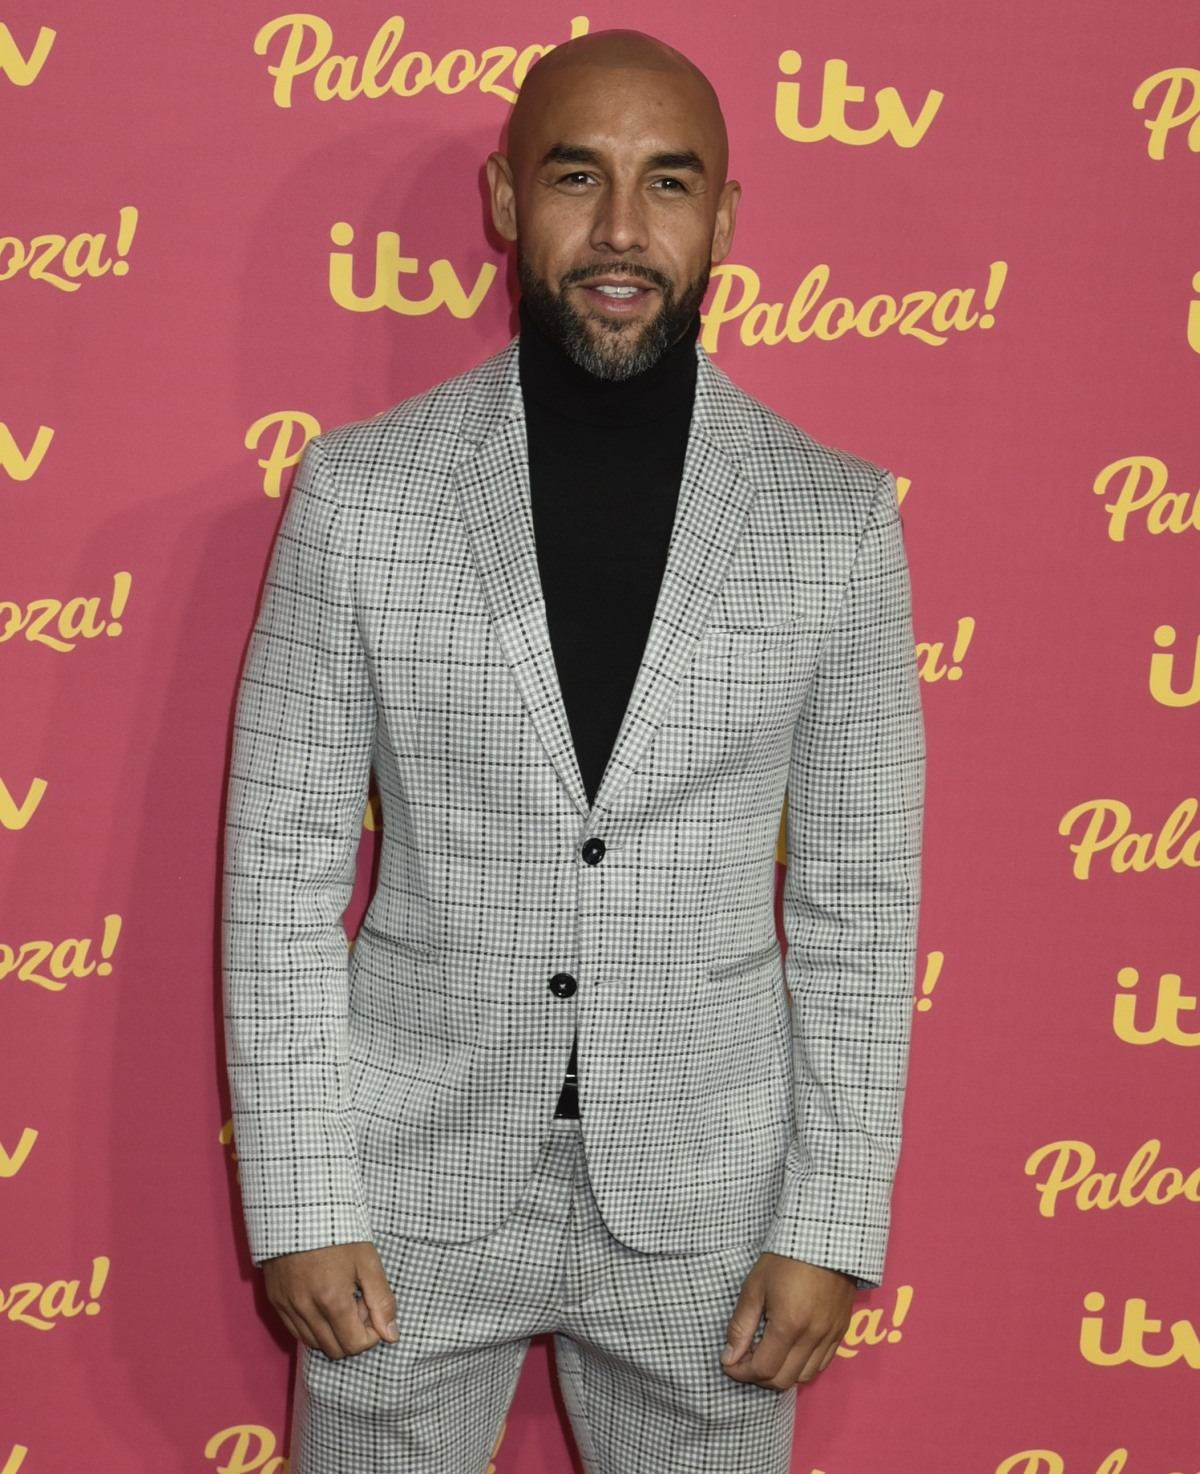 Alex Beresford attends The ITV Palooza! 2019 at The Royal Festival Hall, Southbank Centre; London SE1 8XX on Tuesday 12 November 2019.